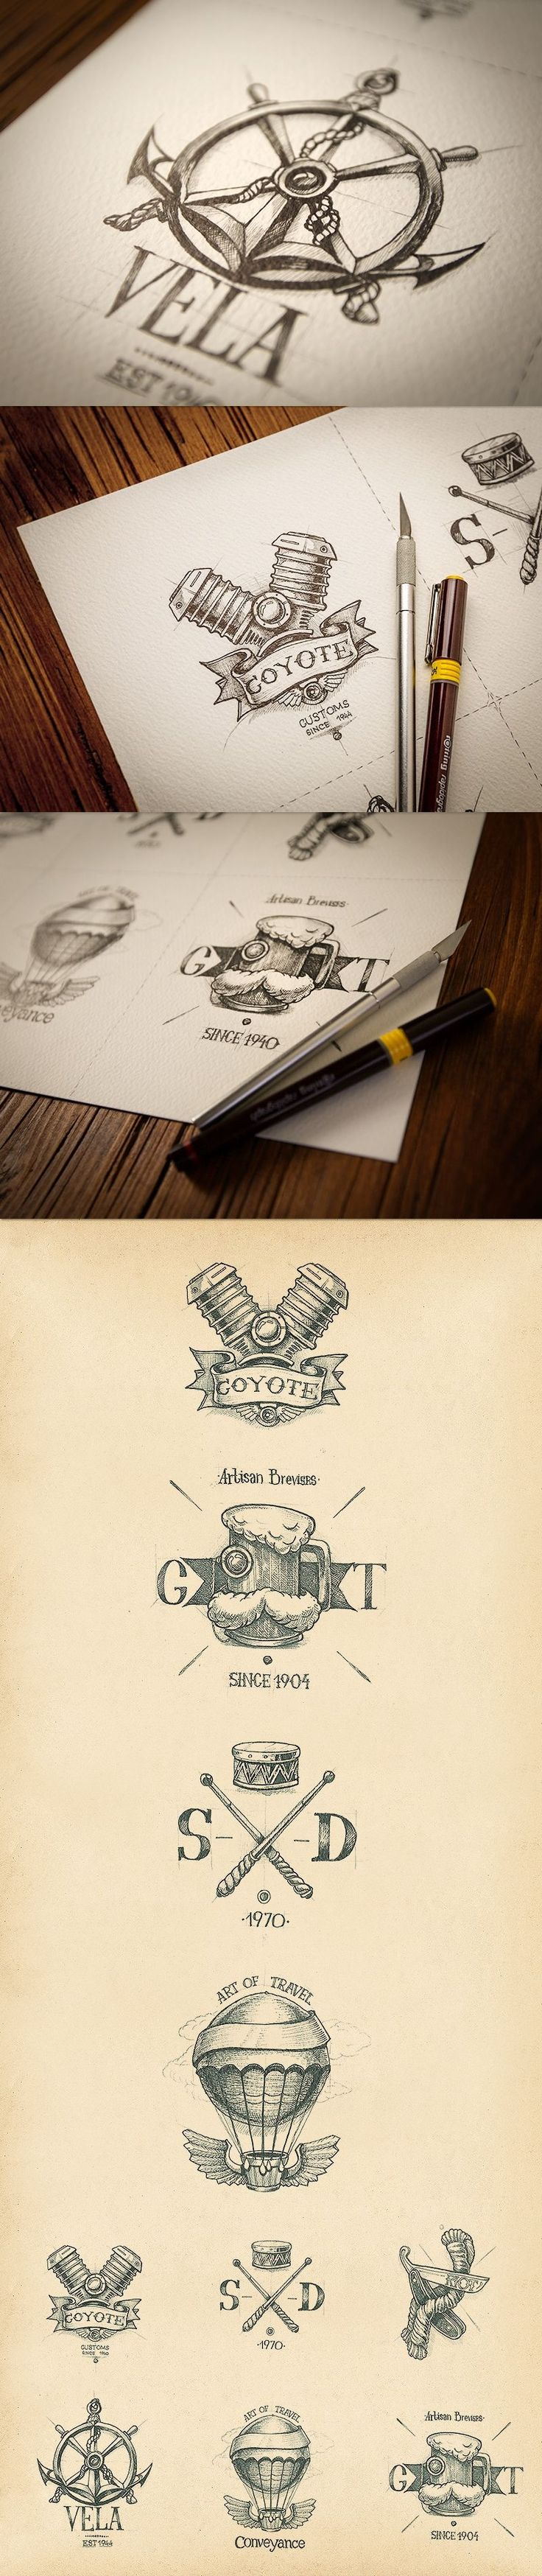 """Unknown designers, great handmade logos. Beautifully crafted """"old school"""" style. #oldschoollogos"""